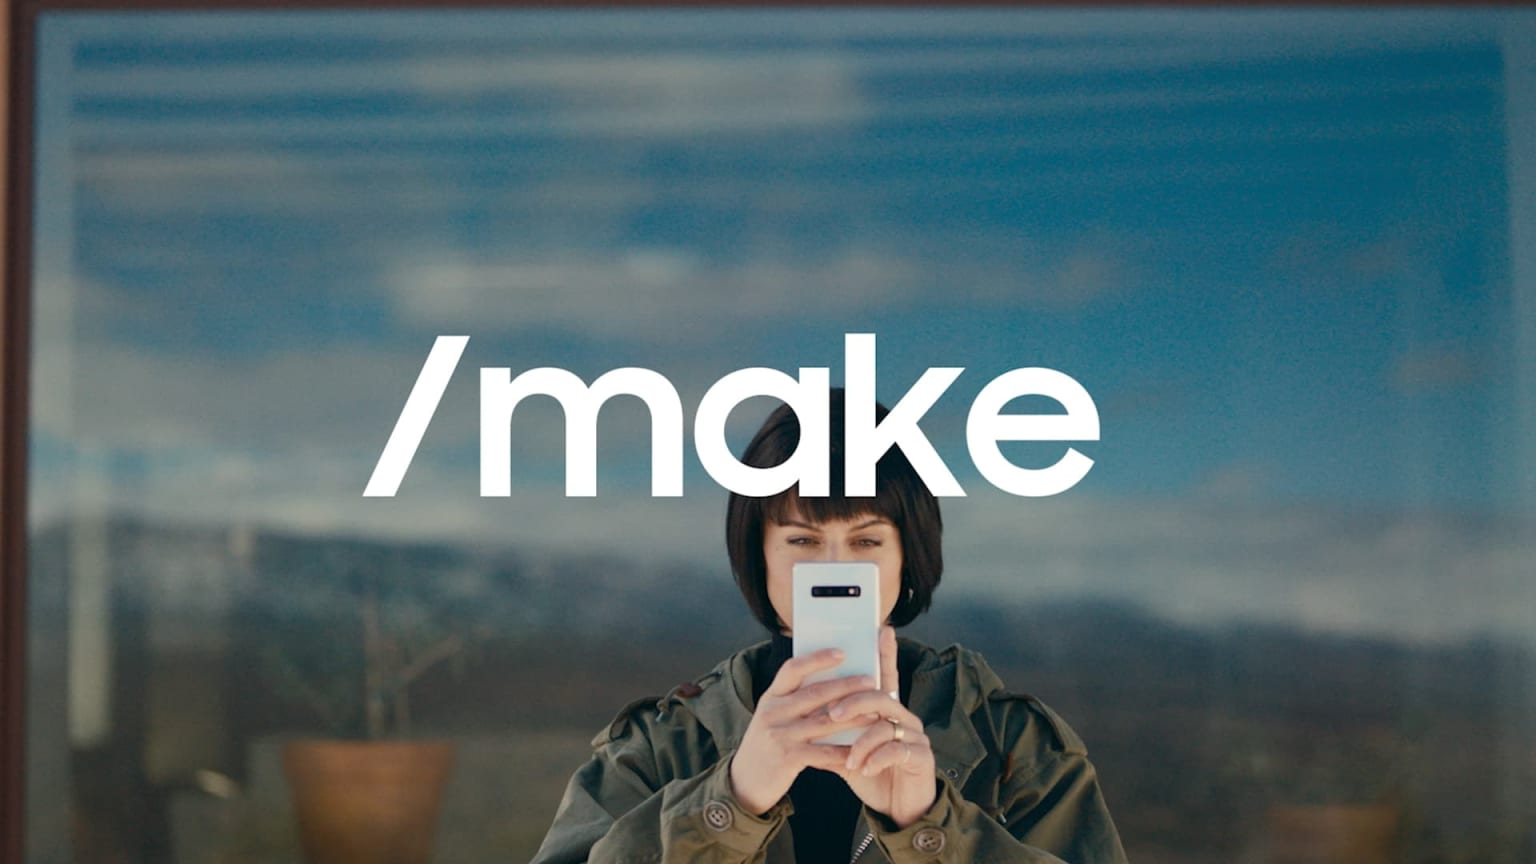 Samsung /make